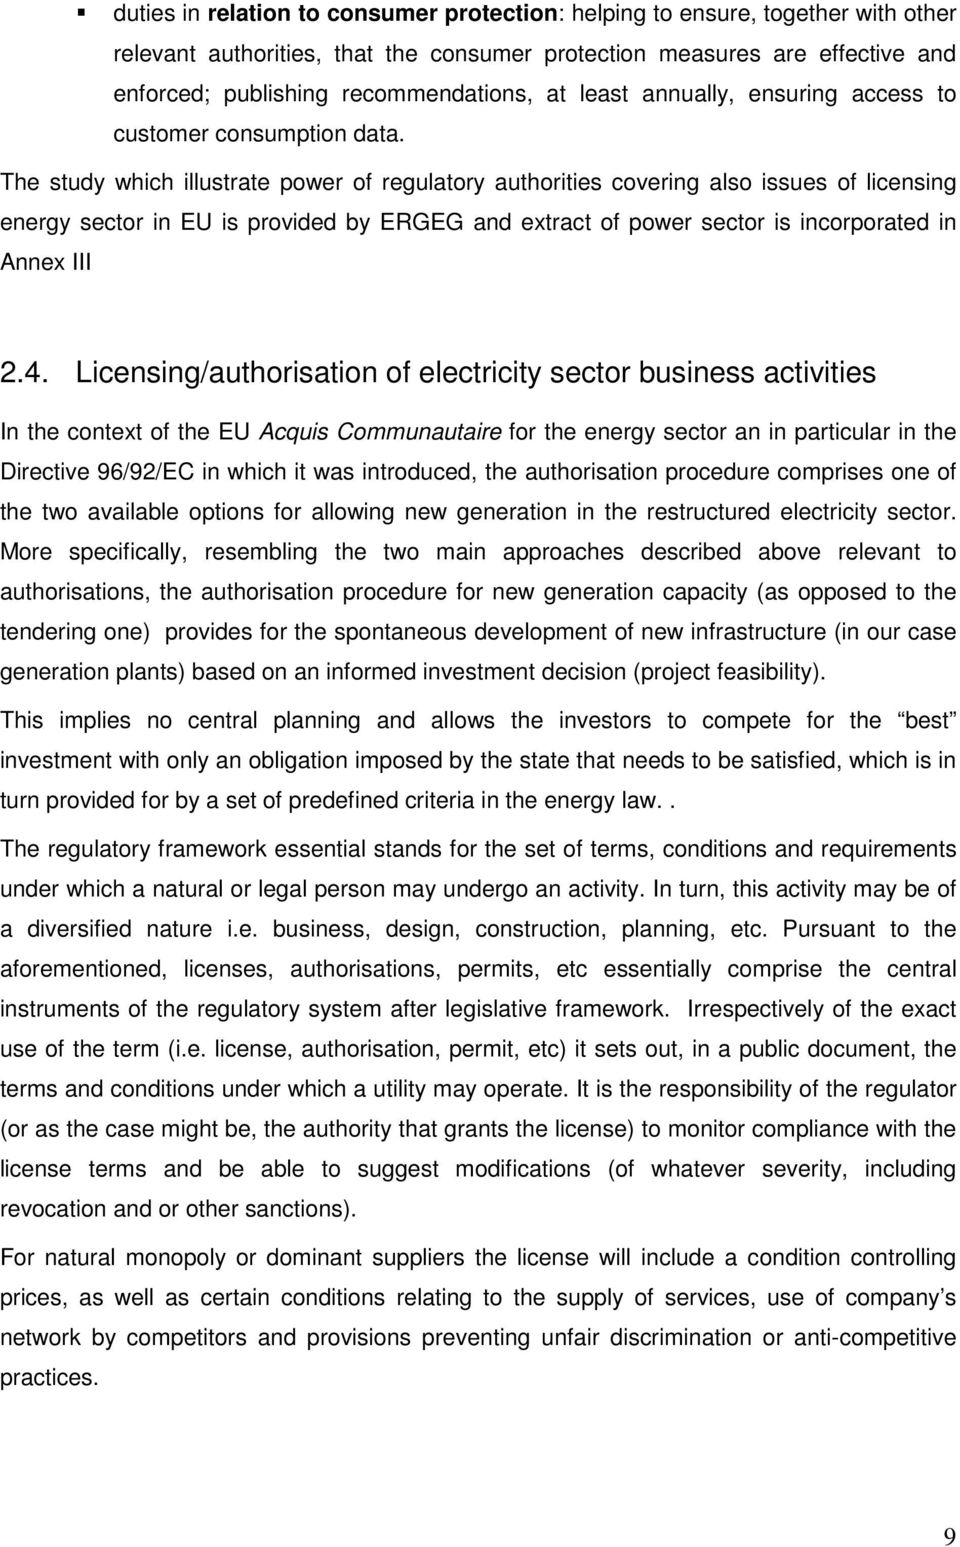 The study which illustrate power of regulatory authorities covering also issues of licensing energy sector in EU is provided by ERGEG and extract of power sector is incorporated in Annex III 2.4.